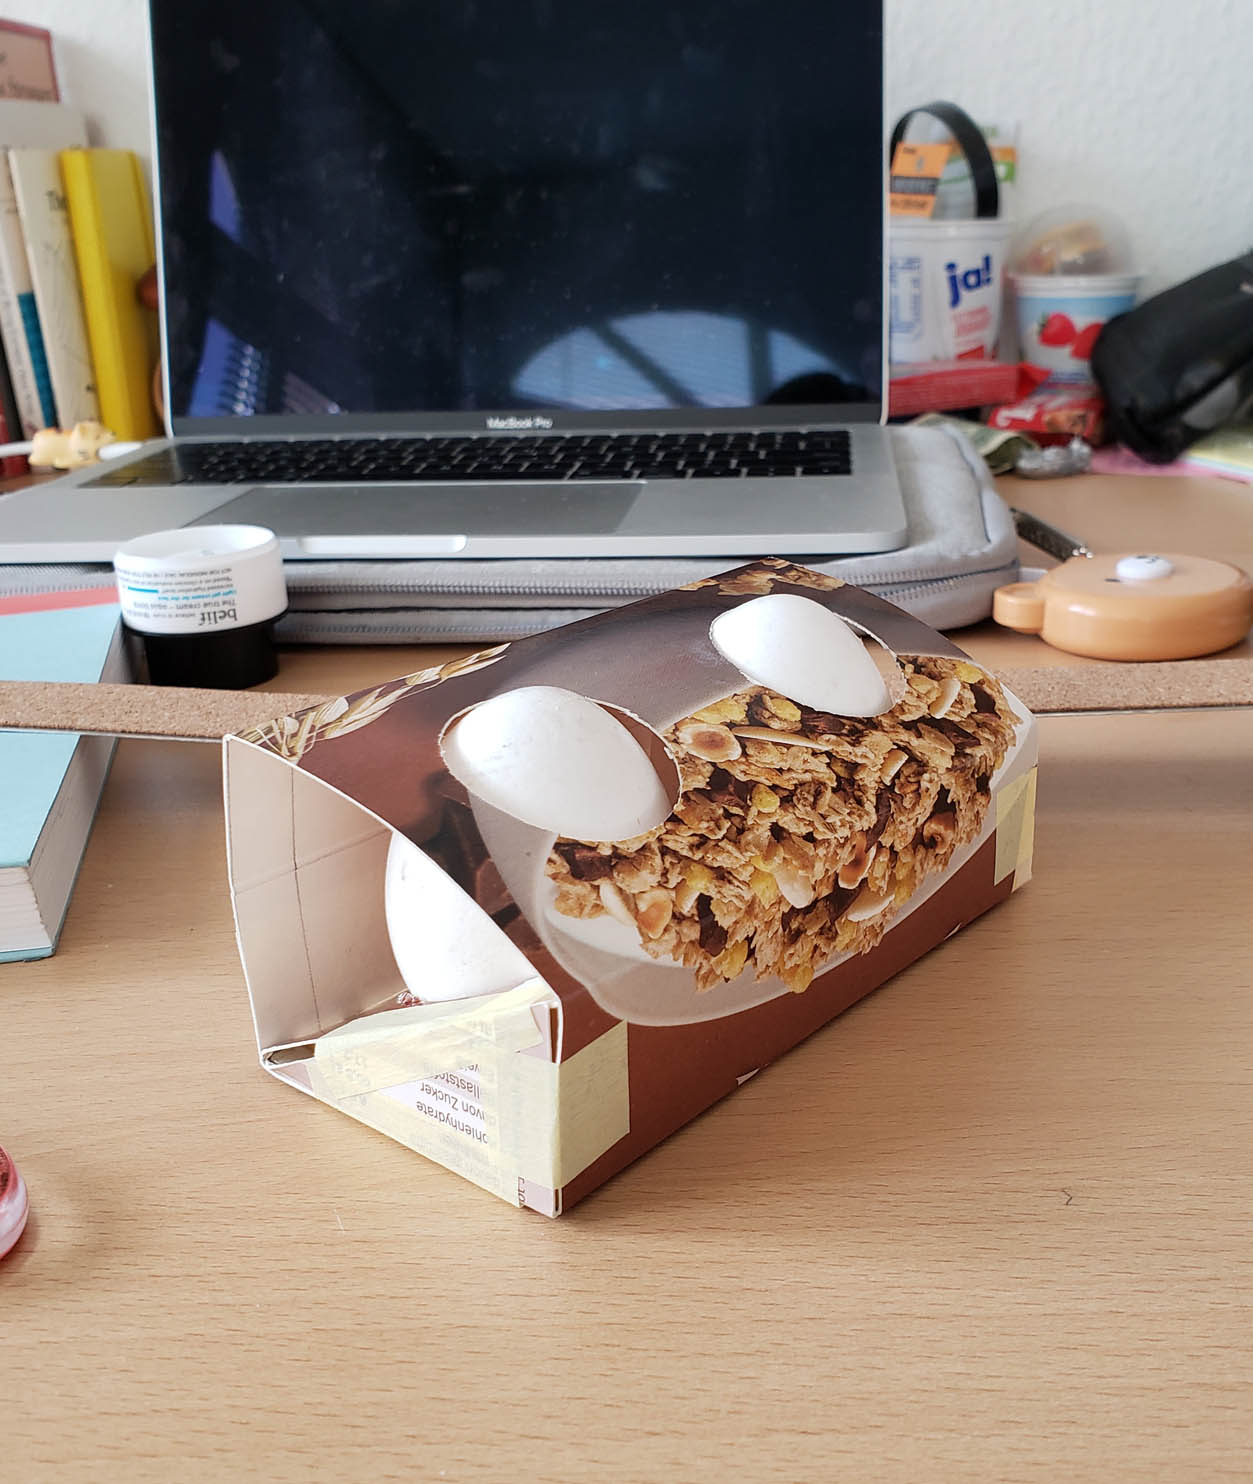 A prototype of the final egg package made out of a cereal box. The paper structure includes cutouts along the top and side which exposes the eggs to the air.